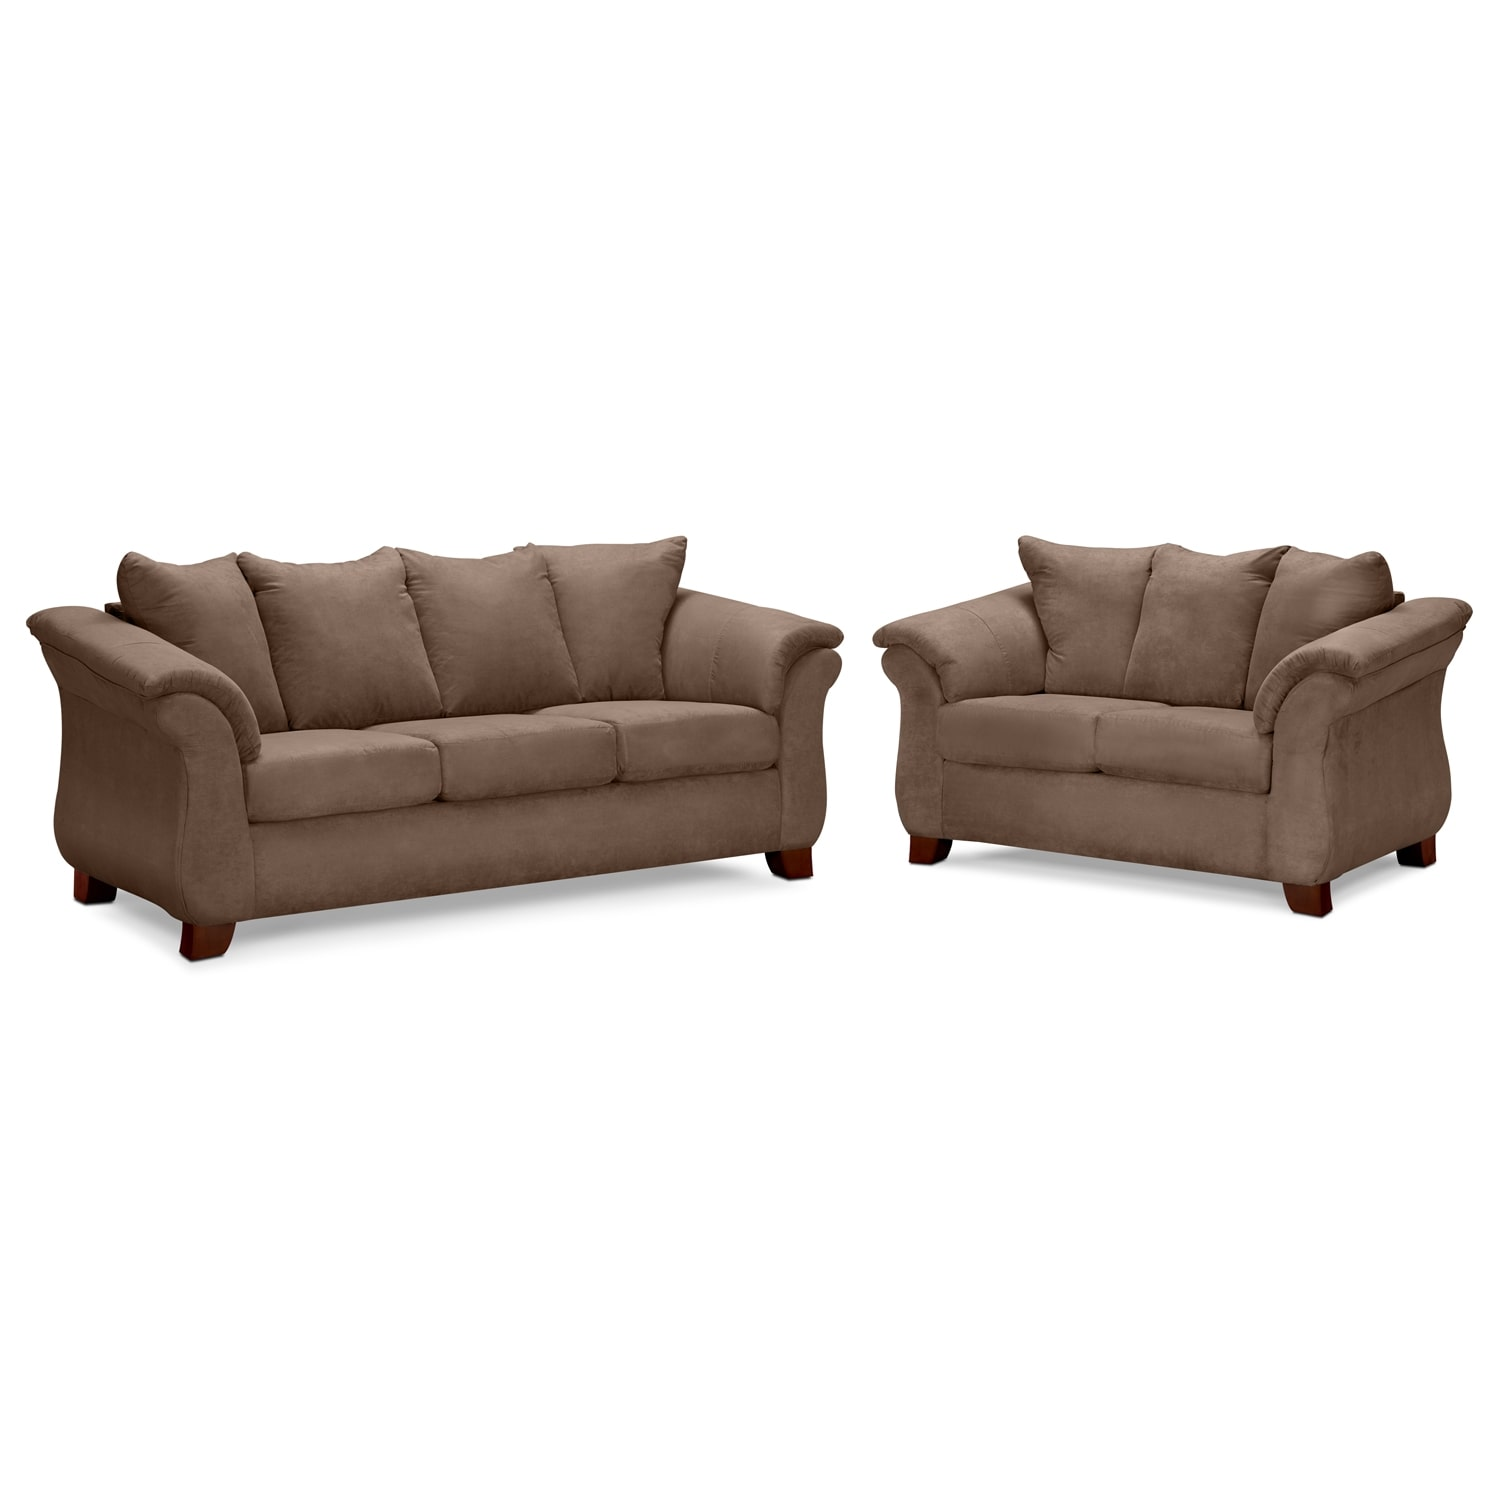 Adrian Taupe 2 Pc. Living Room